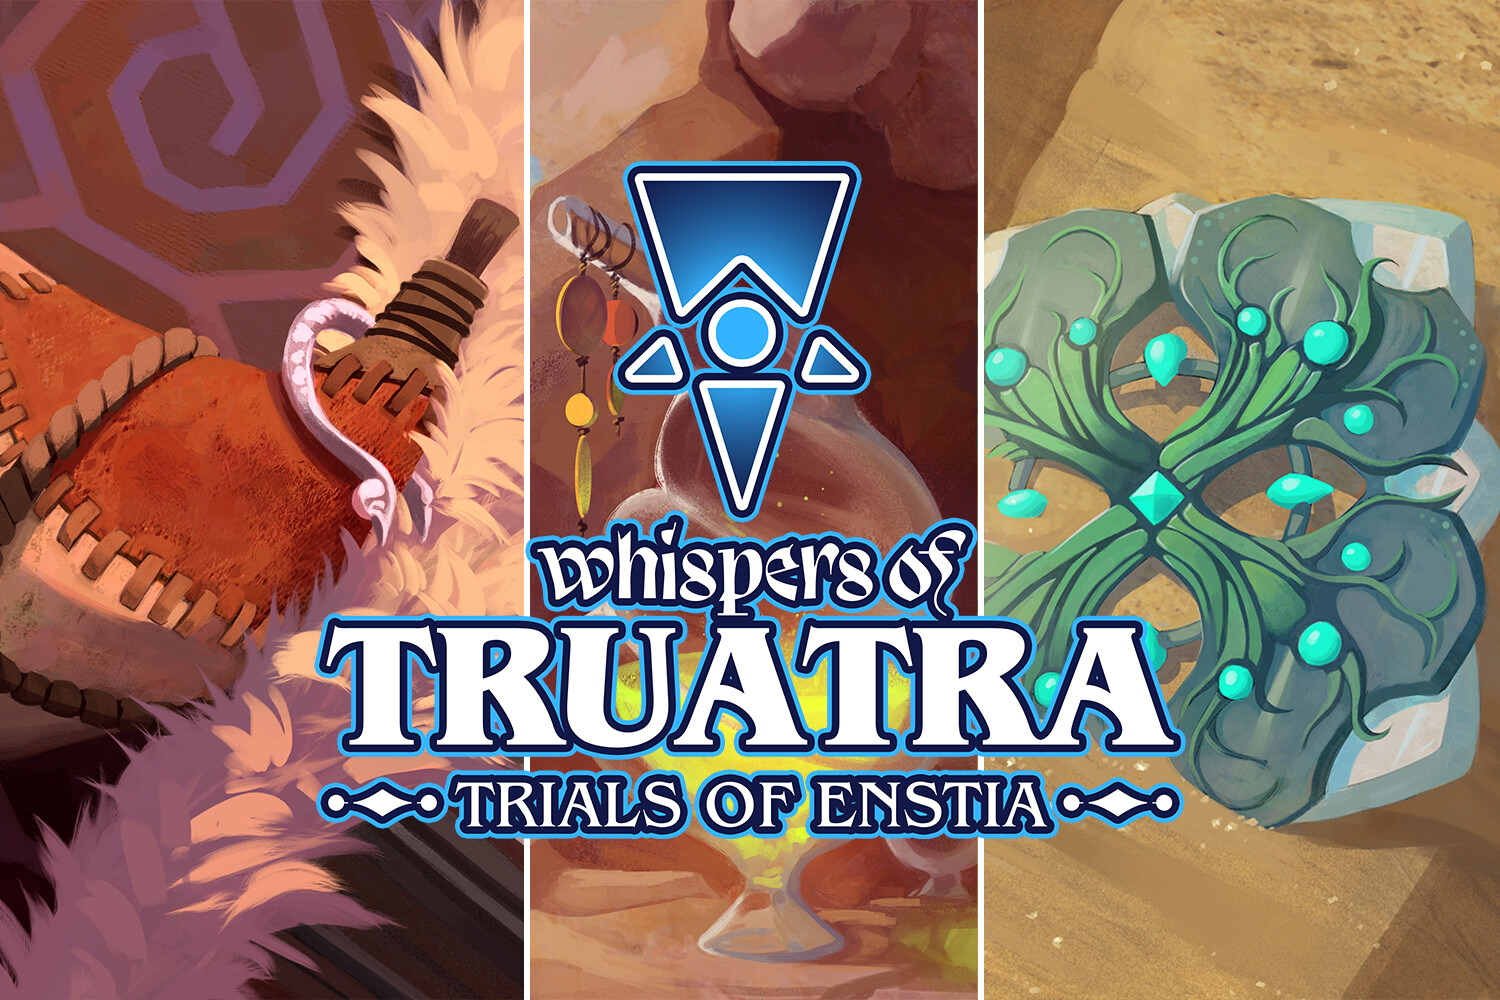 Whispers of Truatra Card Illustrations